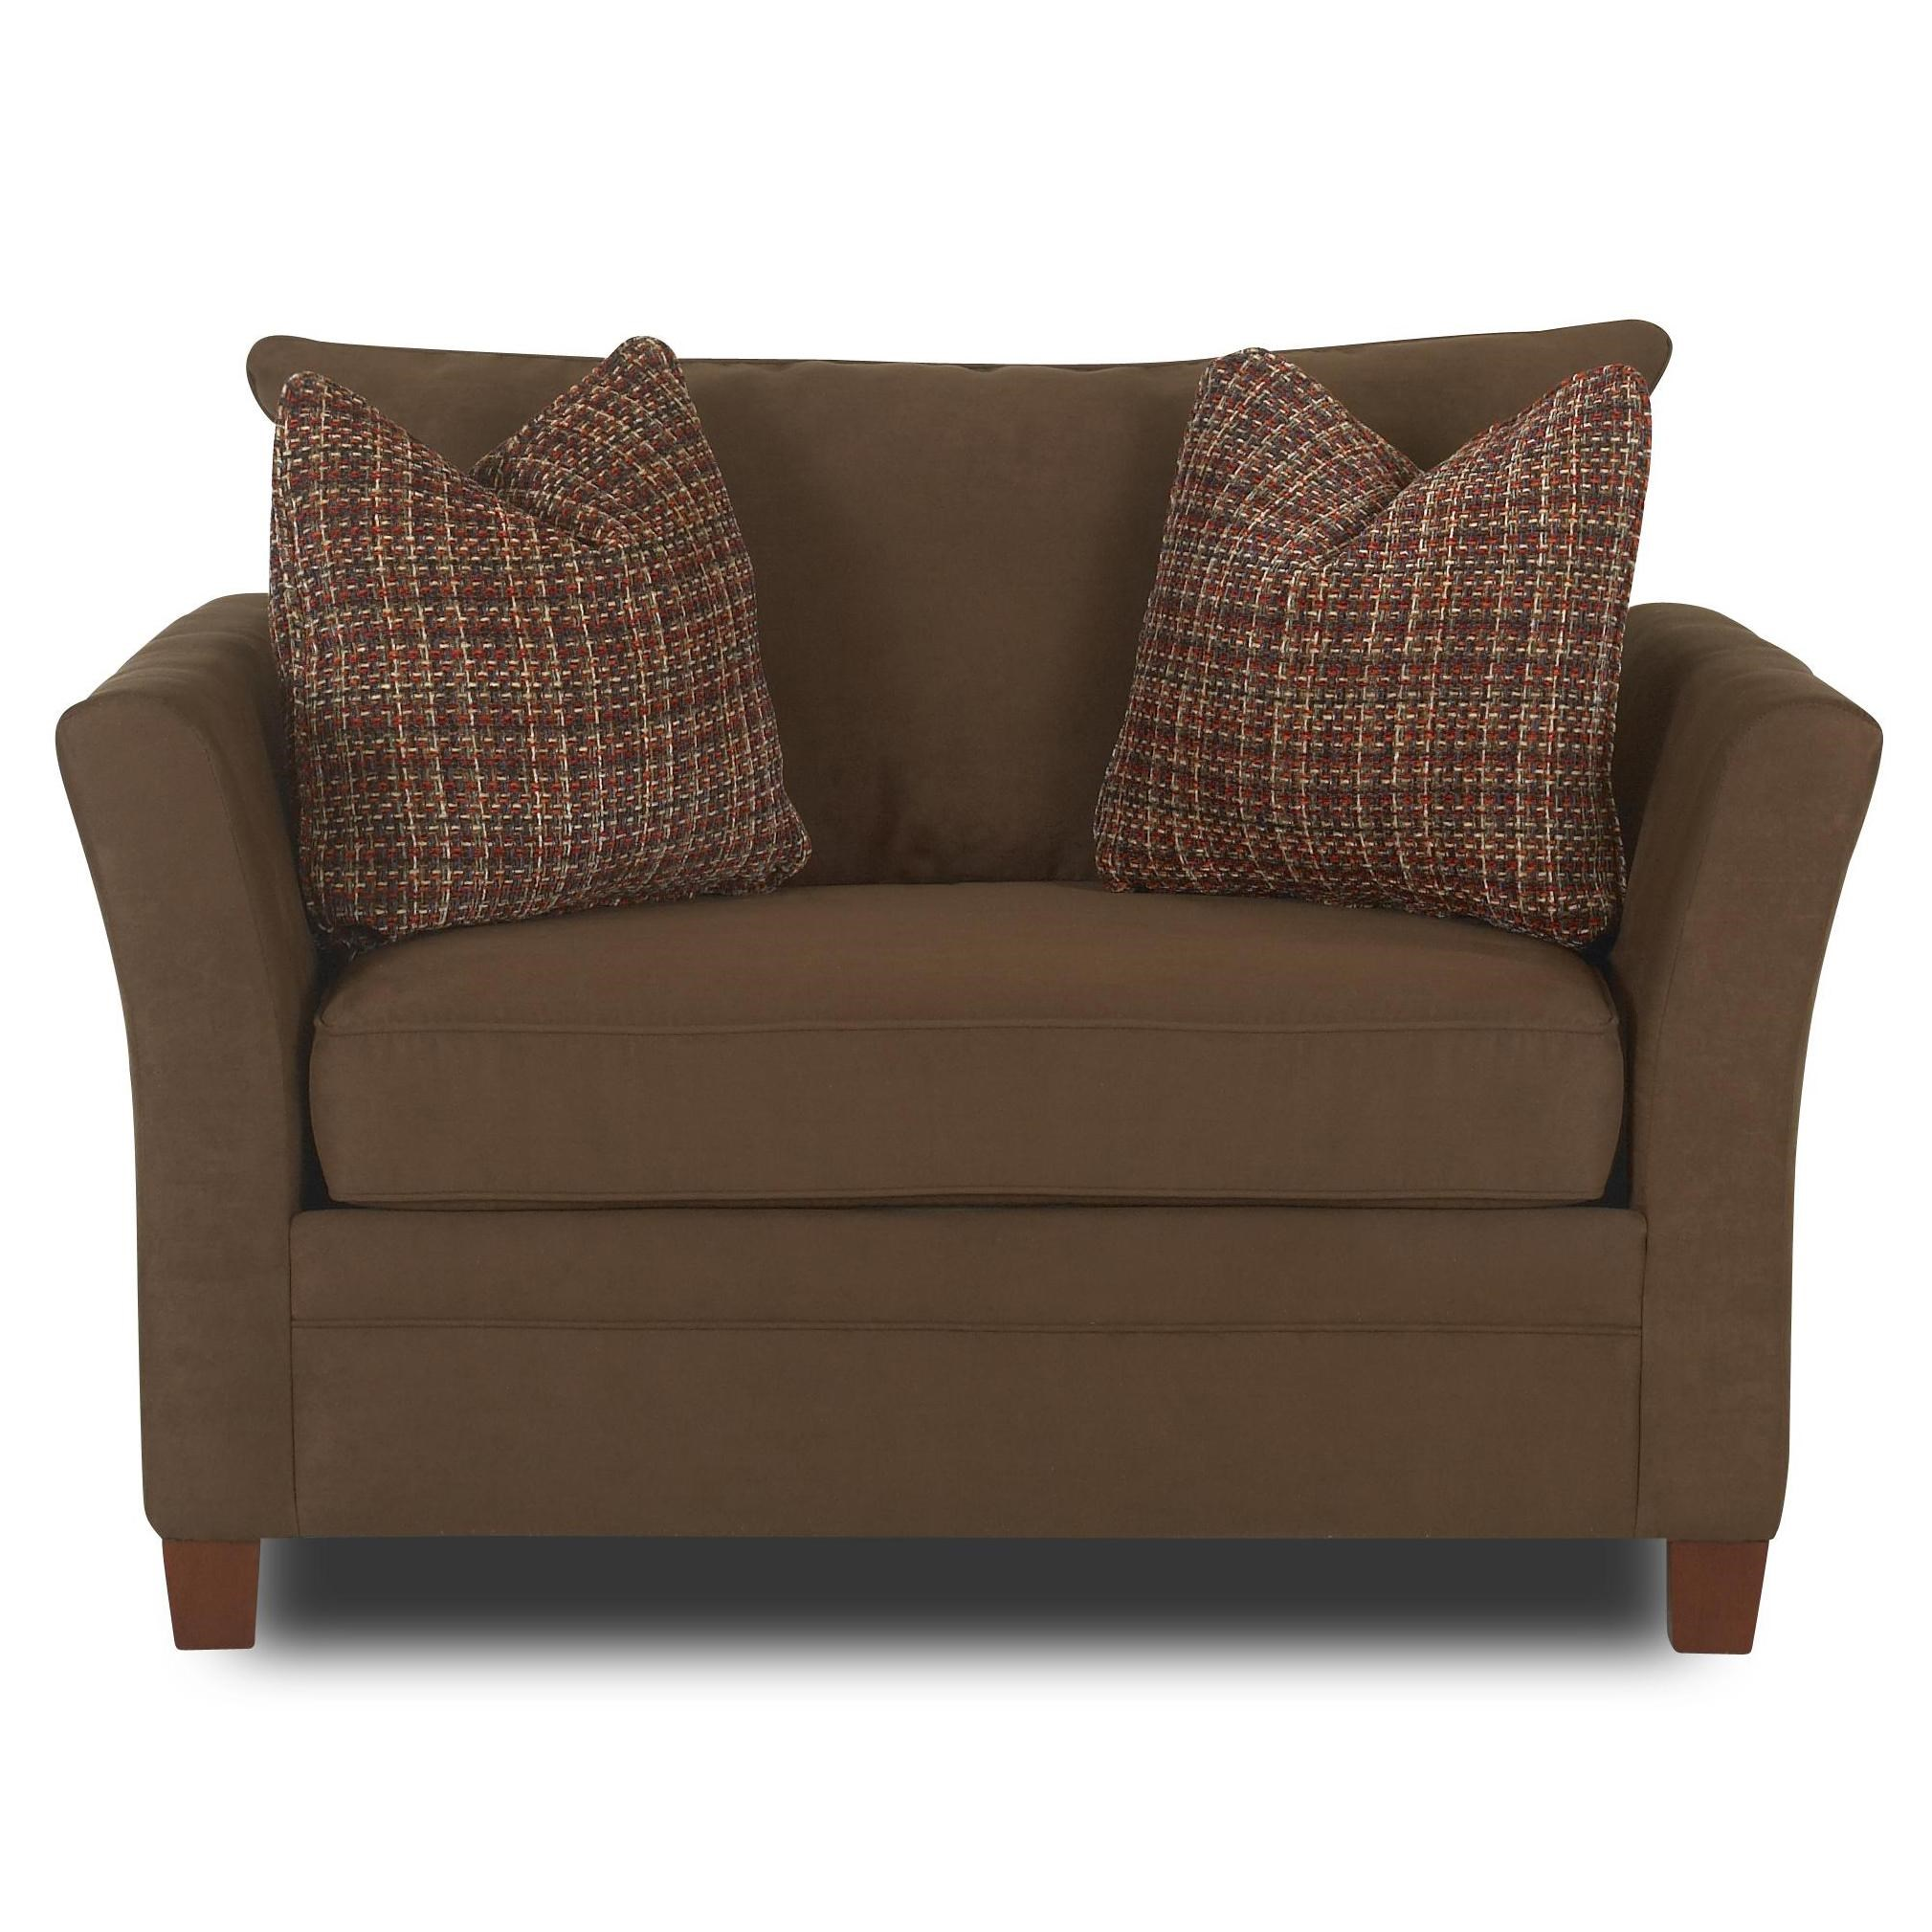 klaussner taylor contemporary chair and a half value city rh valuecitynj com klaussner chair slipcover klaussner chair fabrics